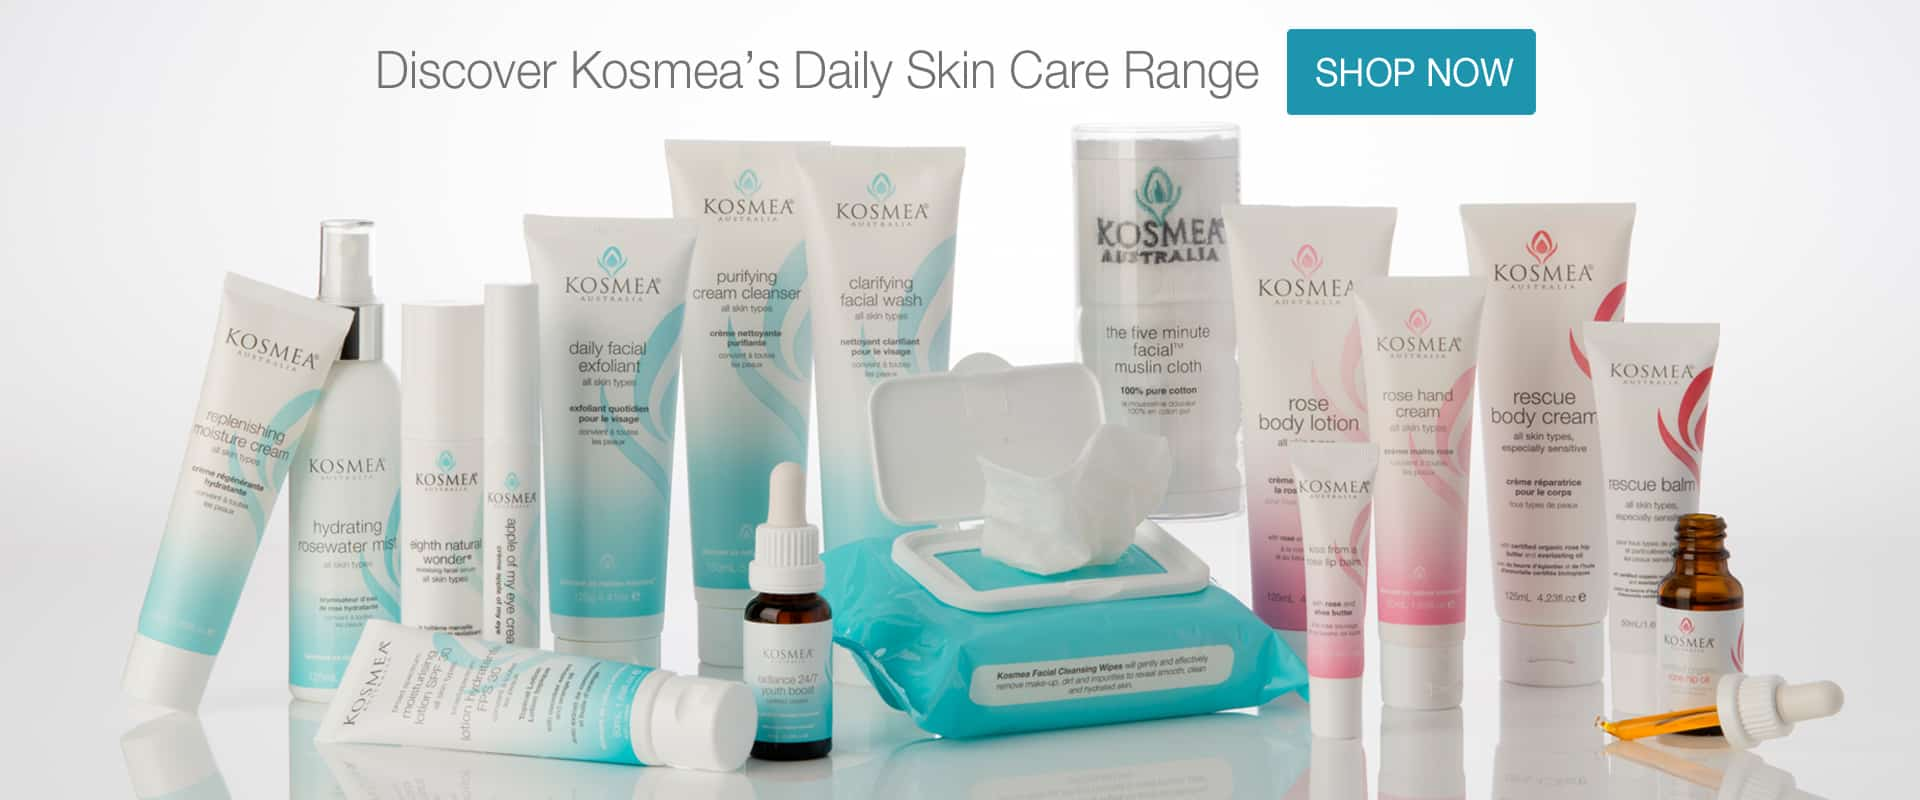 Buy Kosmea Products